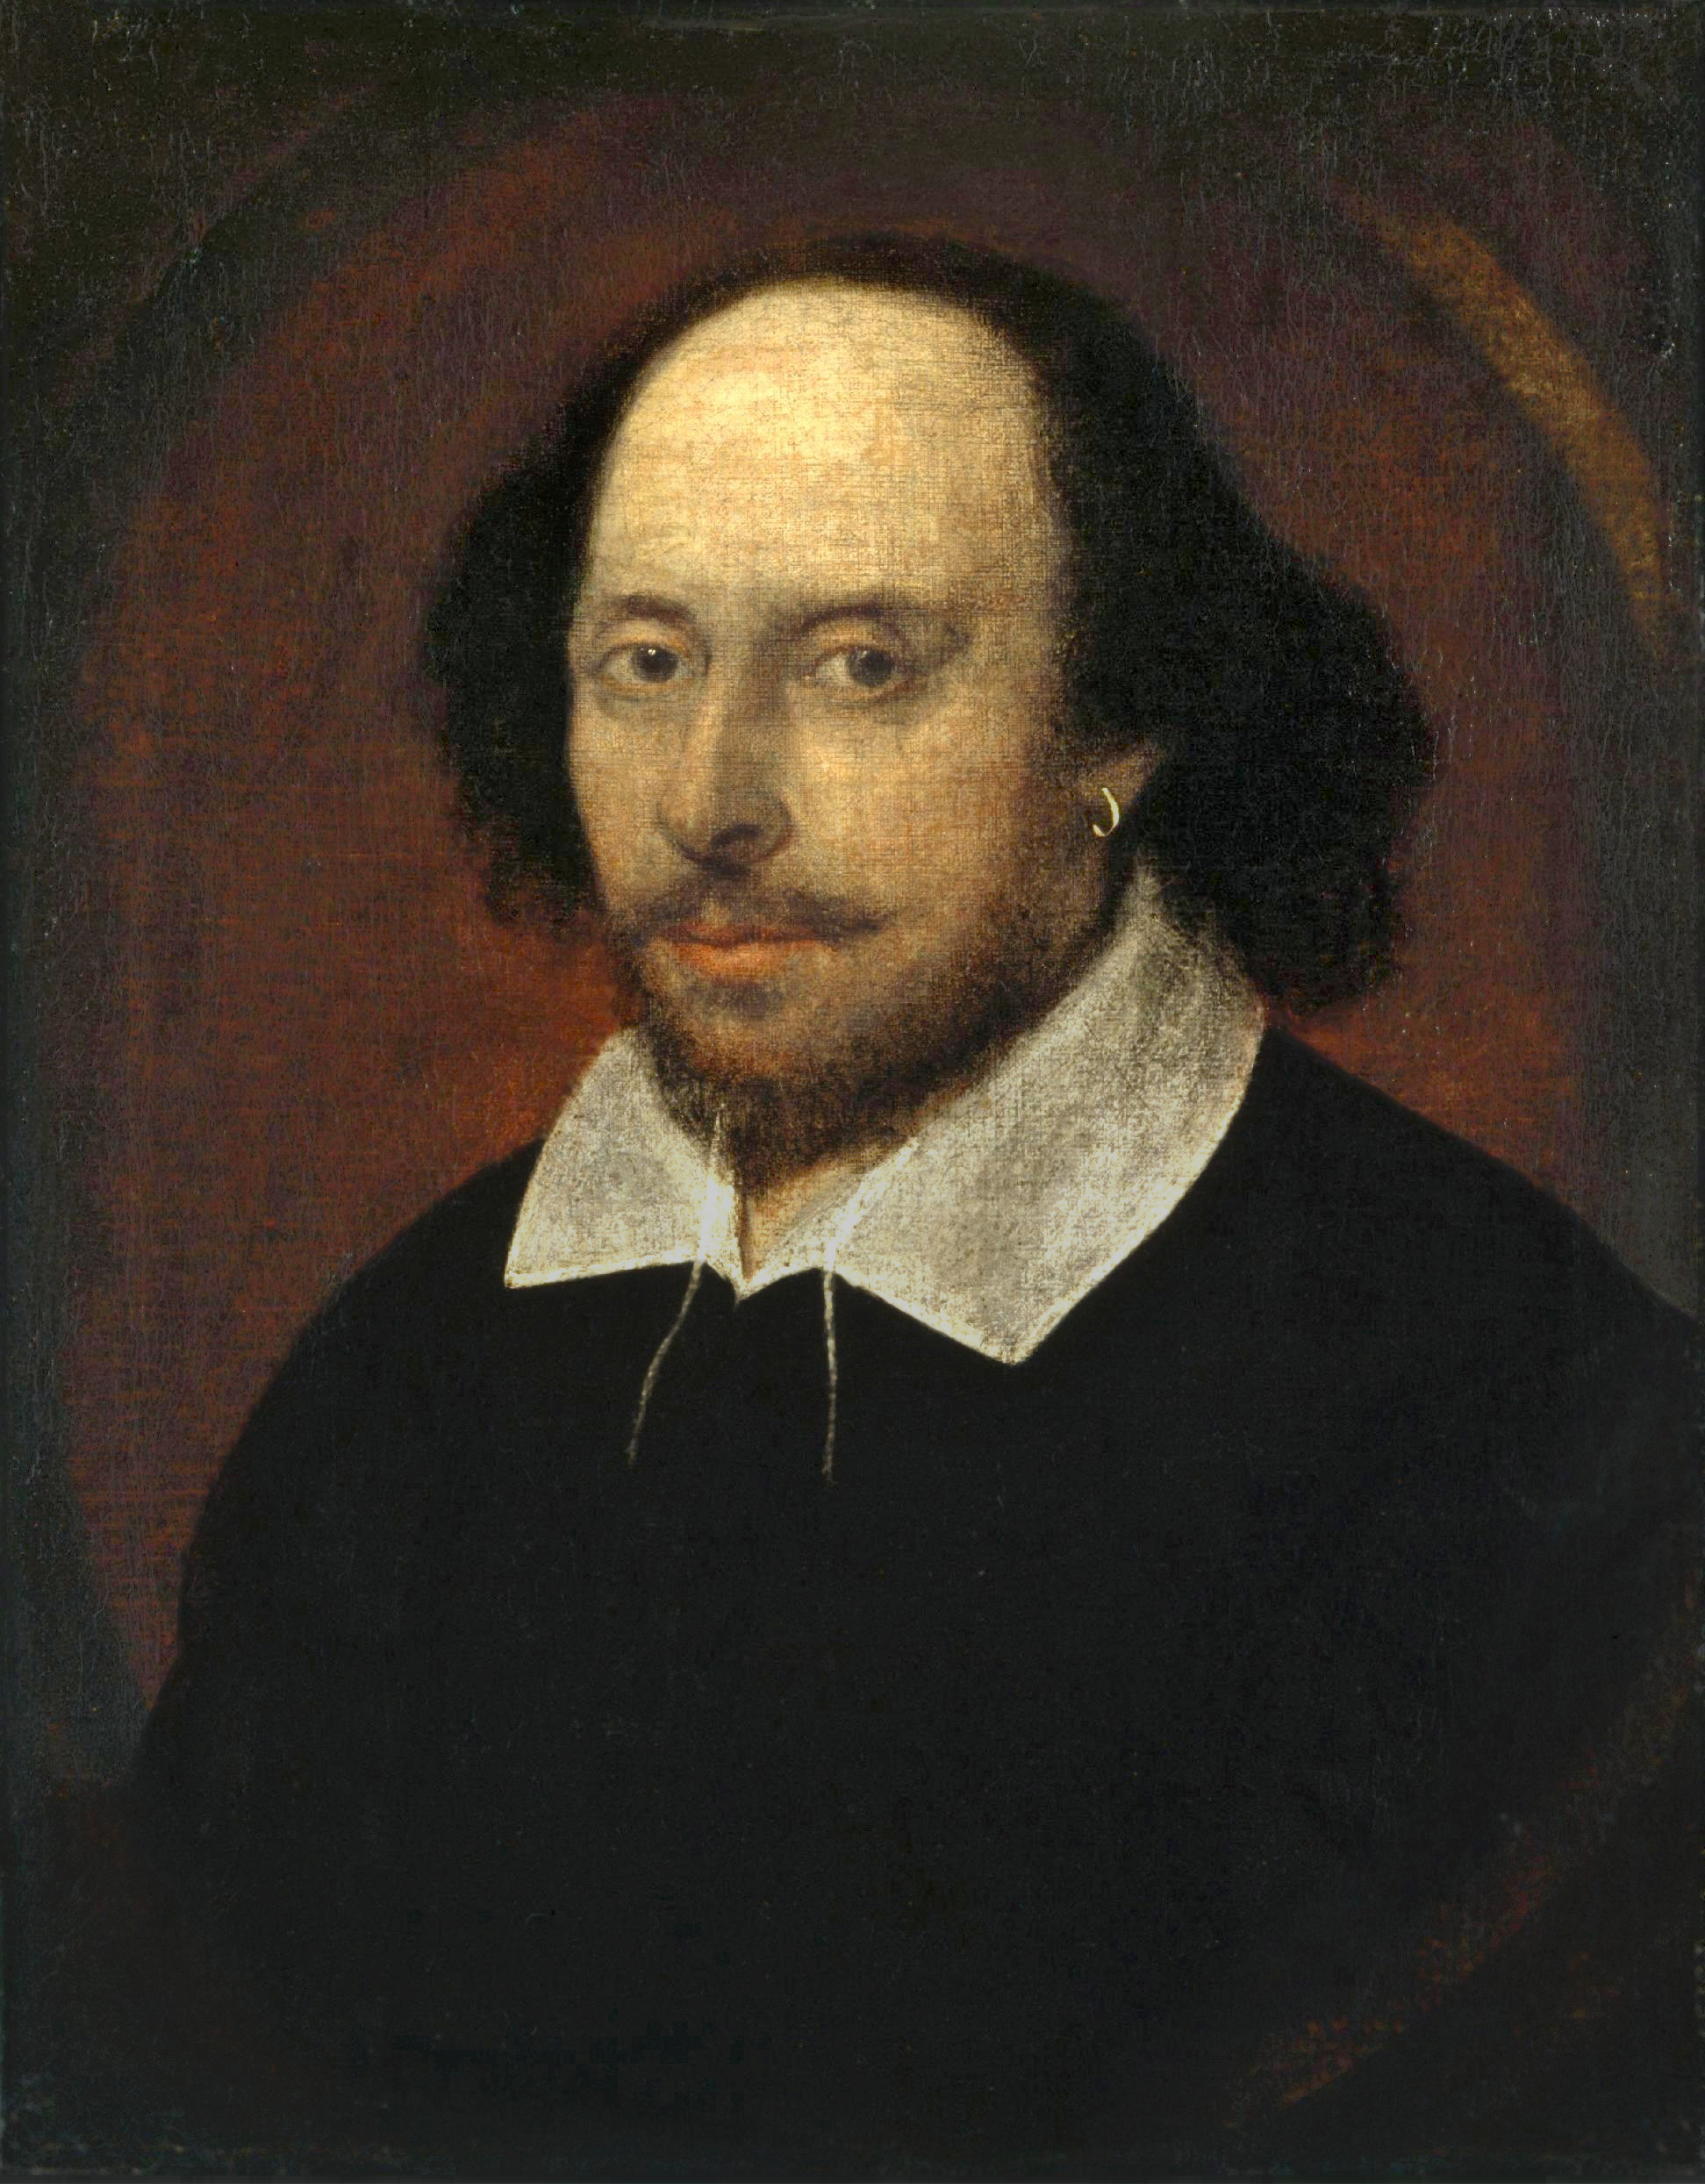 https://upload.wikimedia.org/wikipedia/commons/a/a2/Shakespeare.jpg